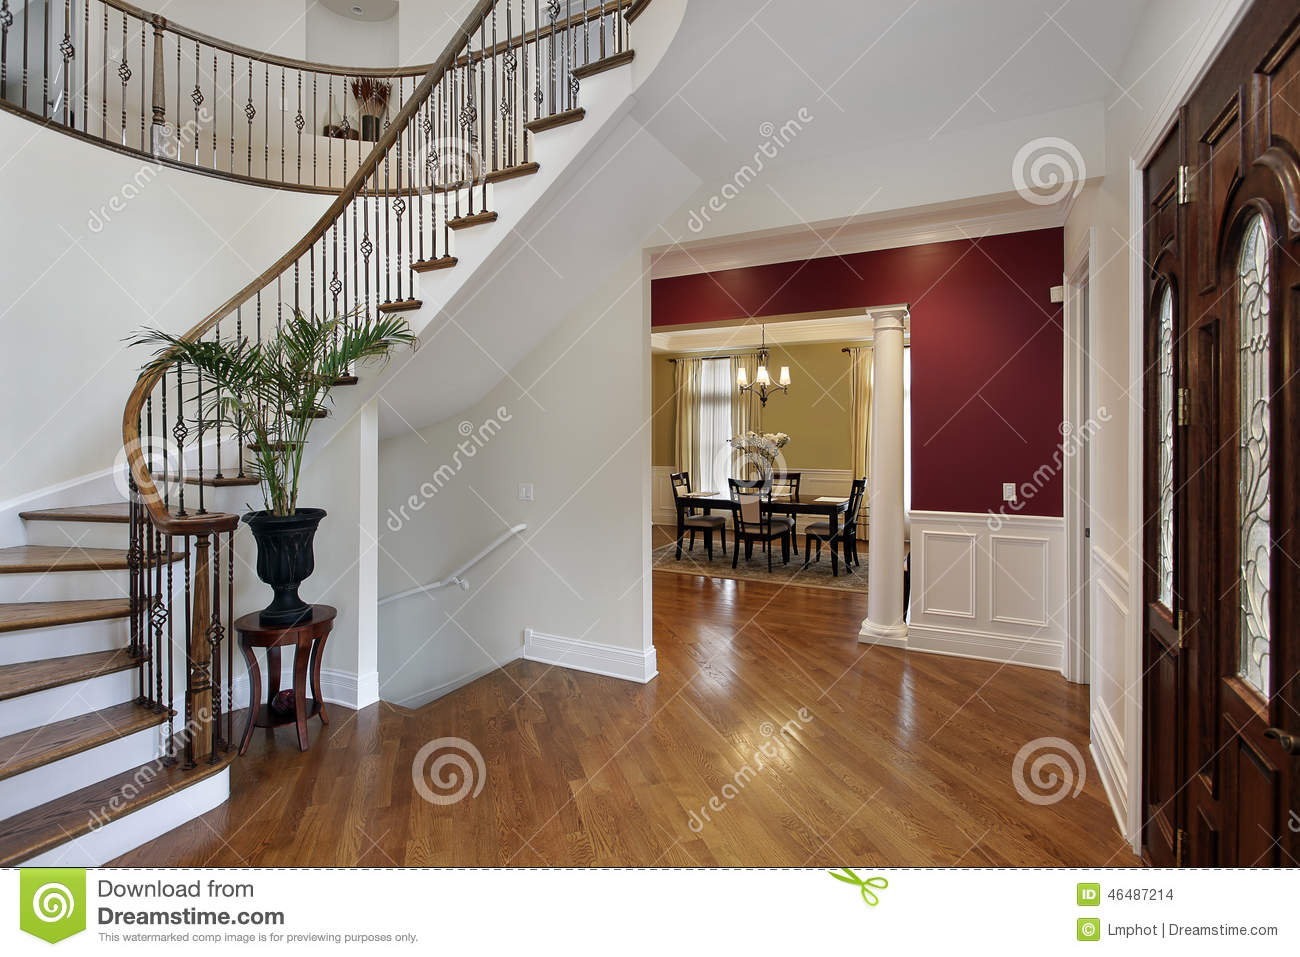 Foyer Luxury Kitchen : Foyer in luxury home with curved staircase stock photo